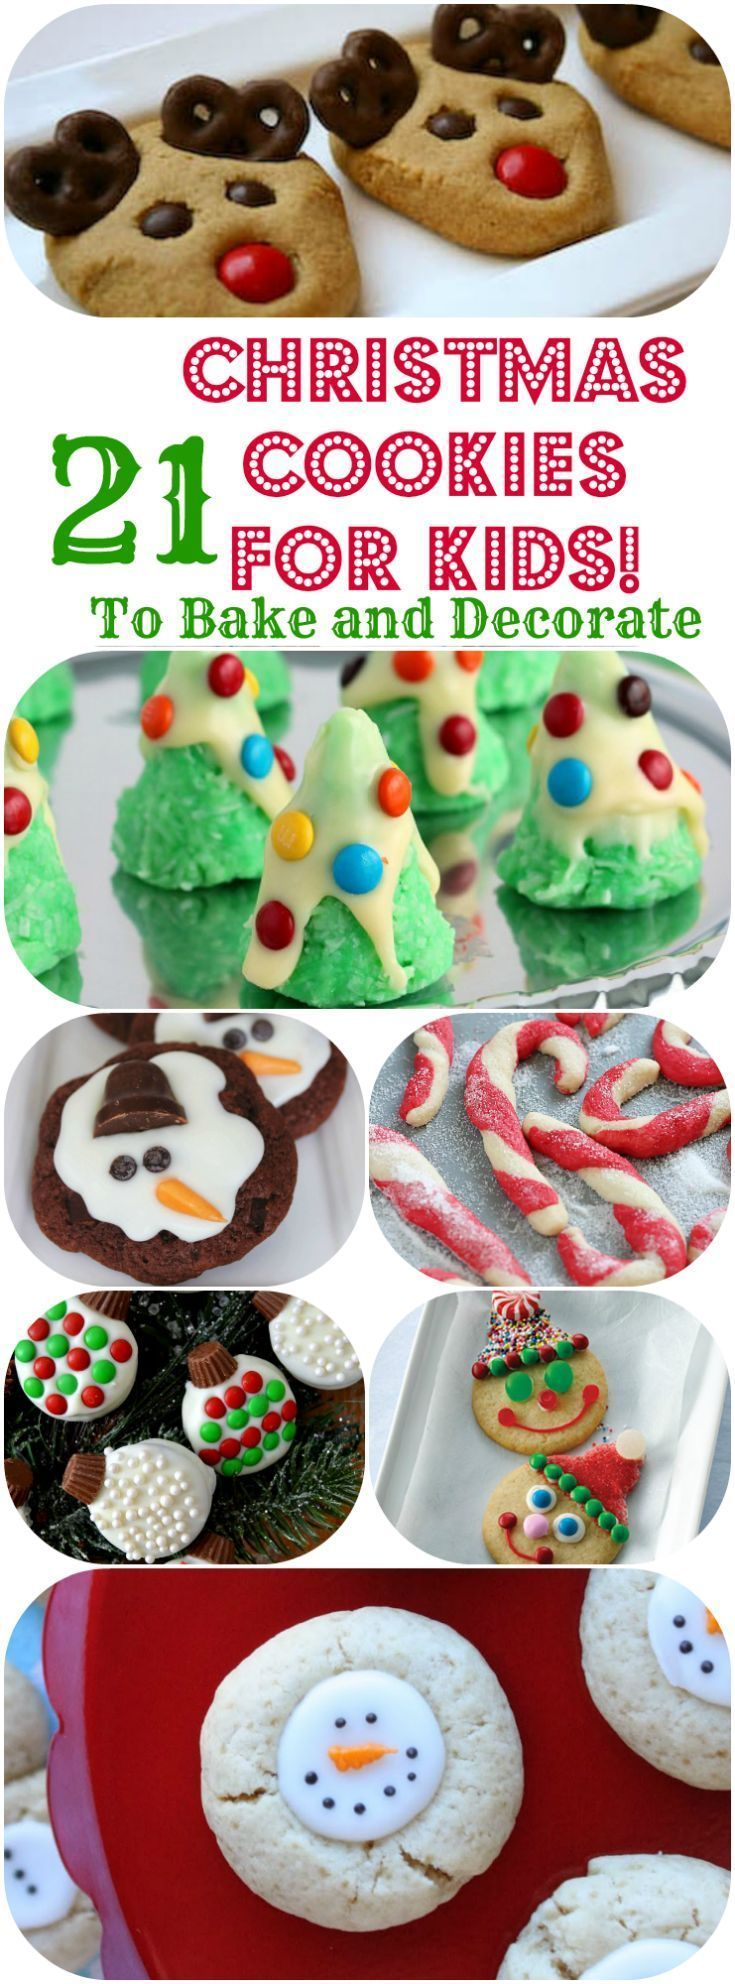 Easy Christmas Cookie recipes for Kids to Bake or Decorate! Perfect for Christmas Gifts, Cookie Exchanges, and Cookies for Santa on Christmas Eve!